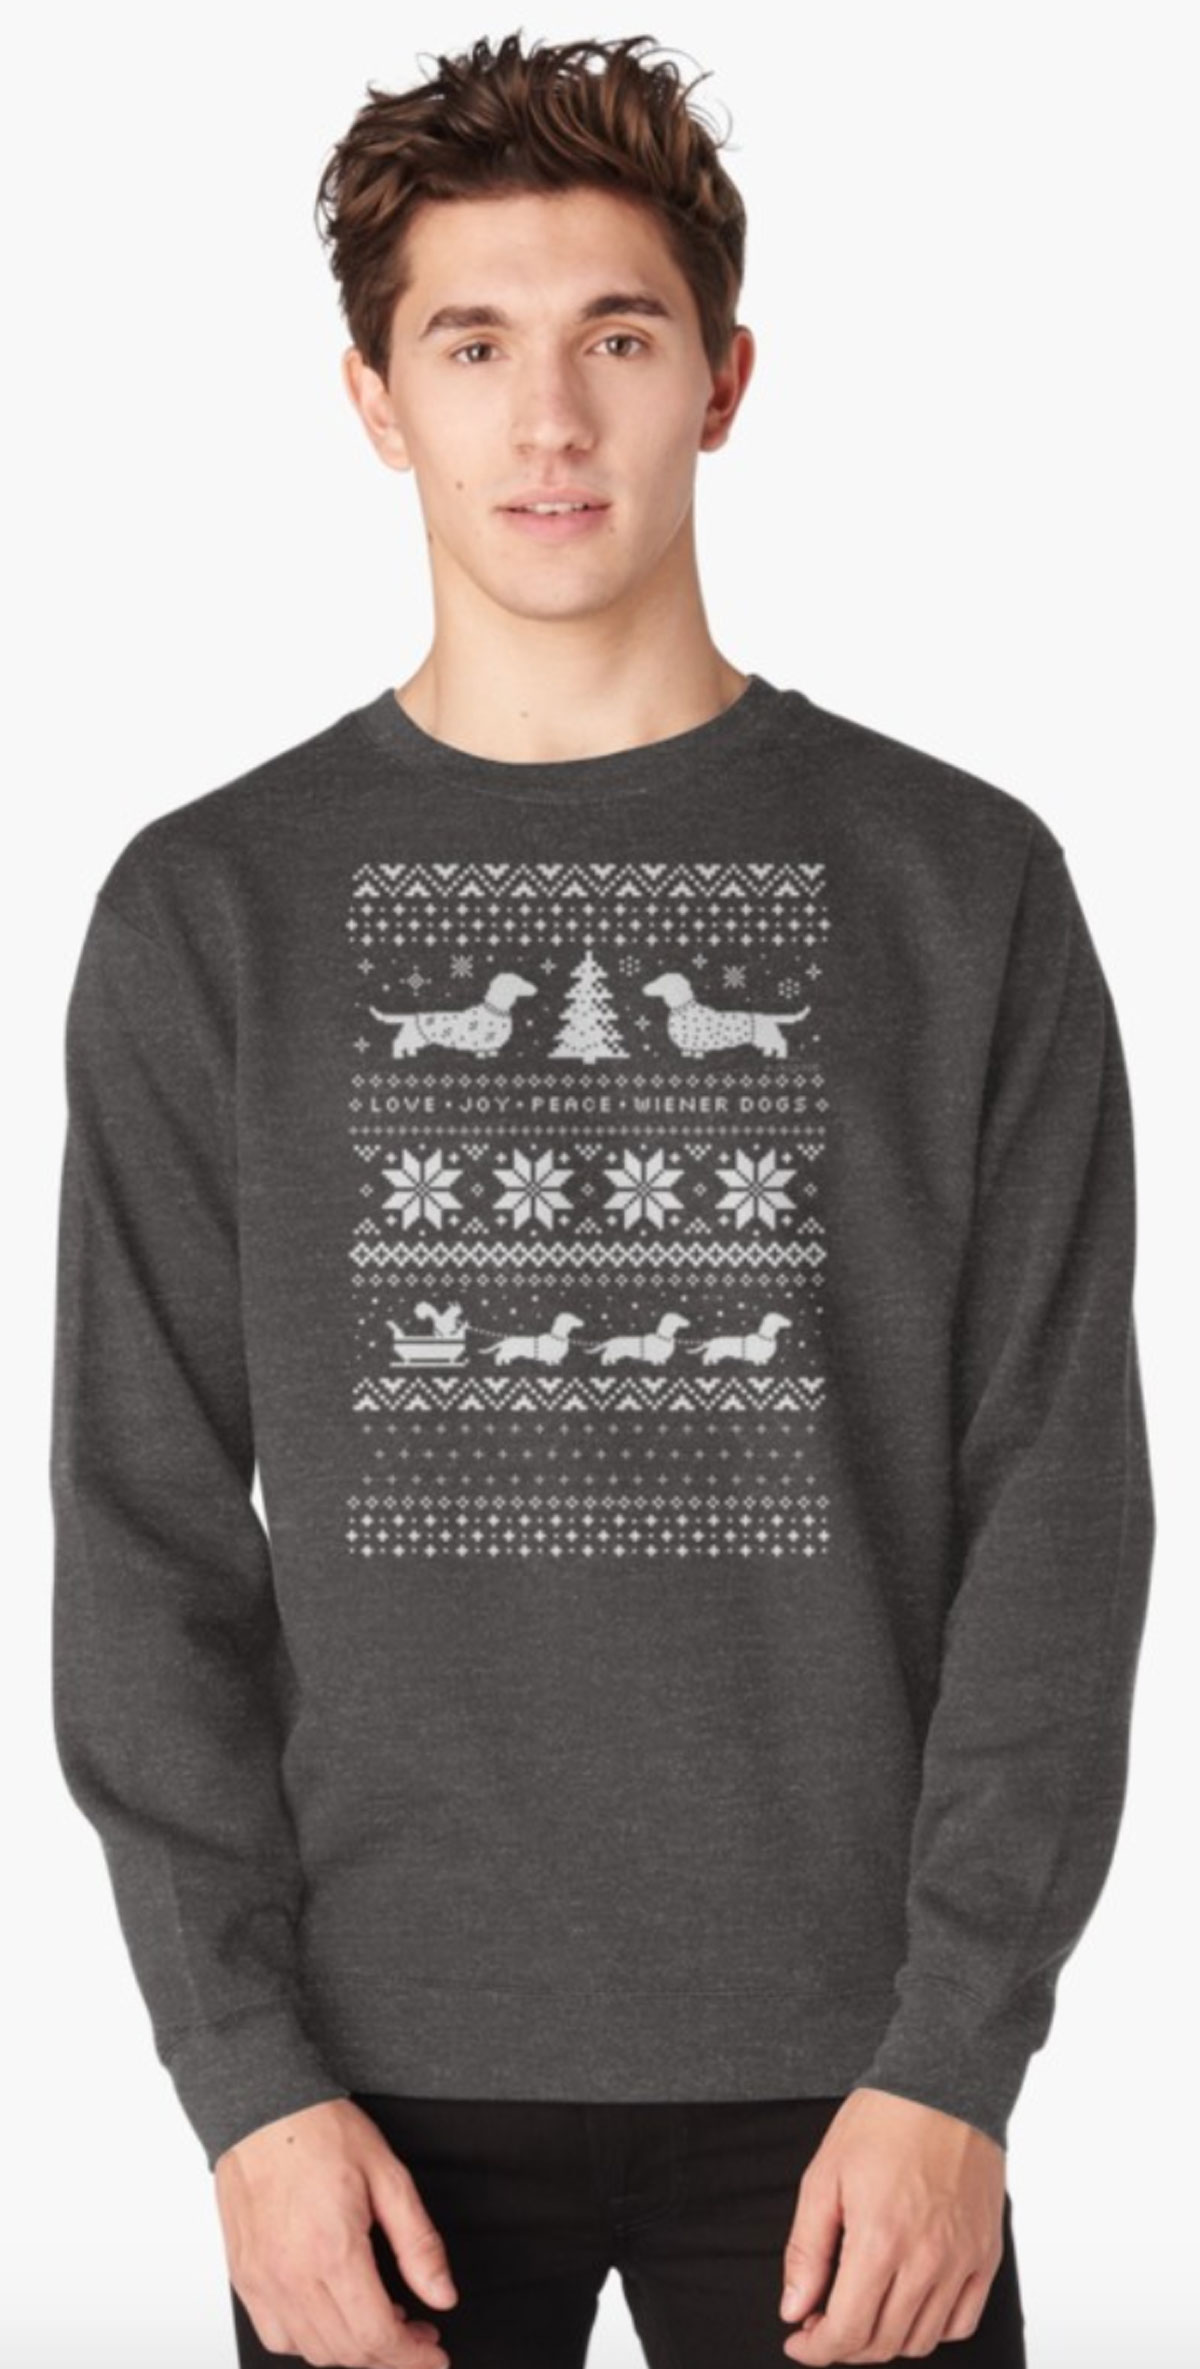 dachshunds in the snow pattern on sweater